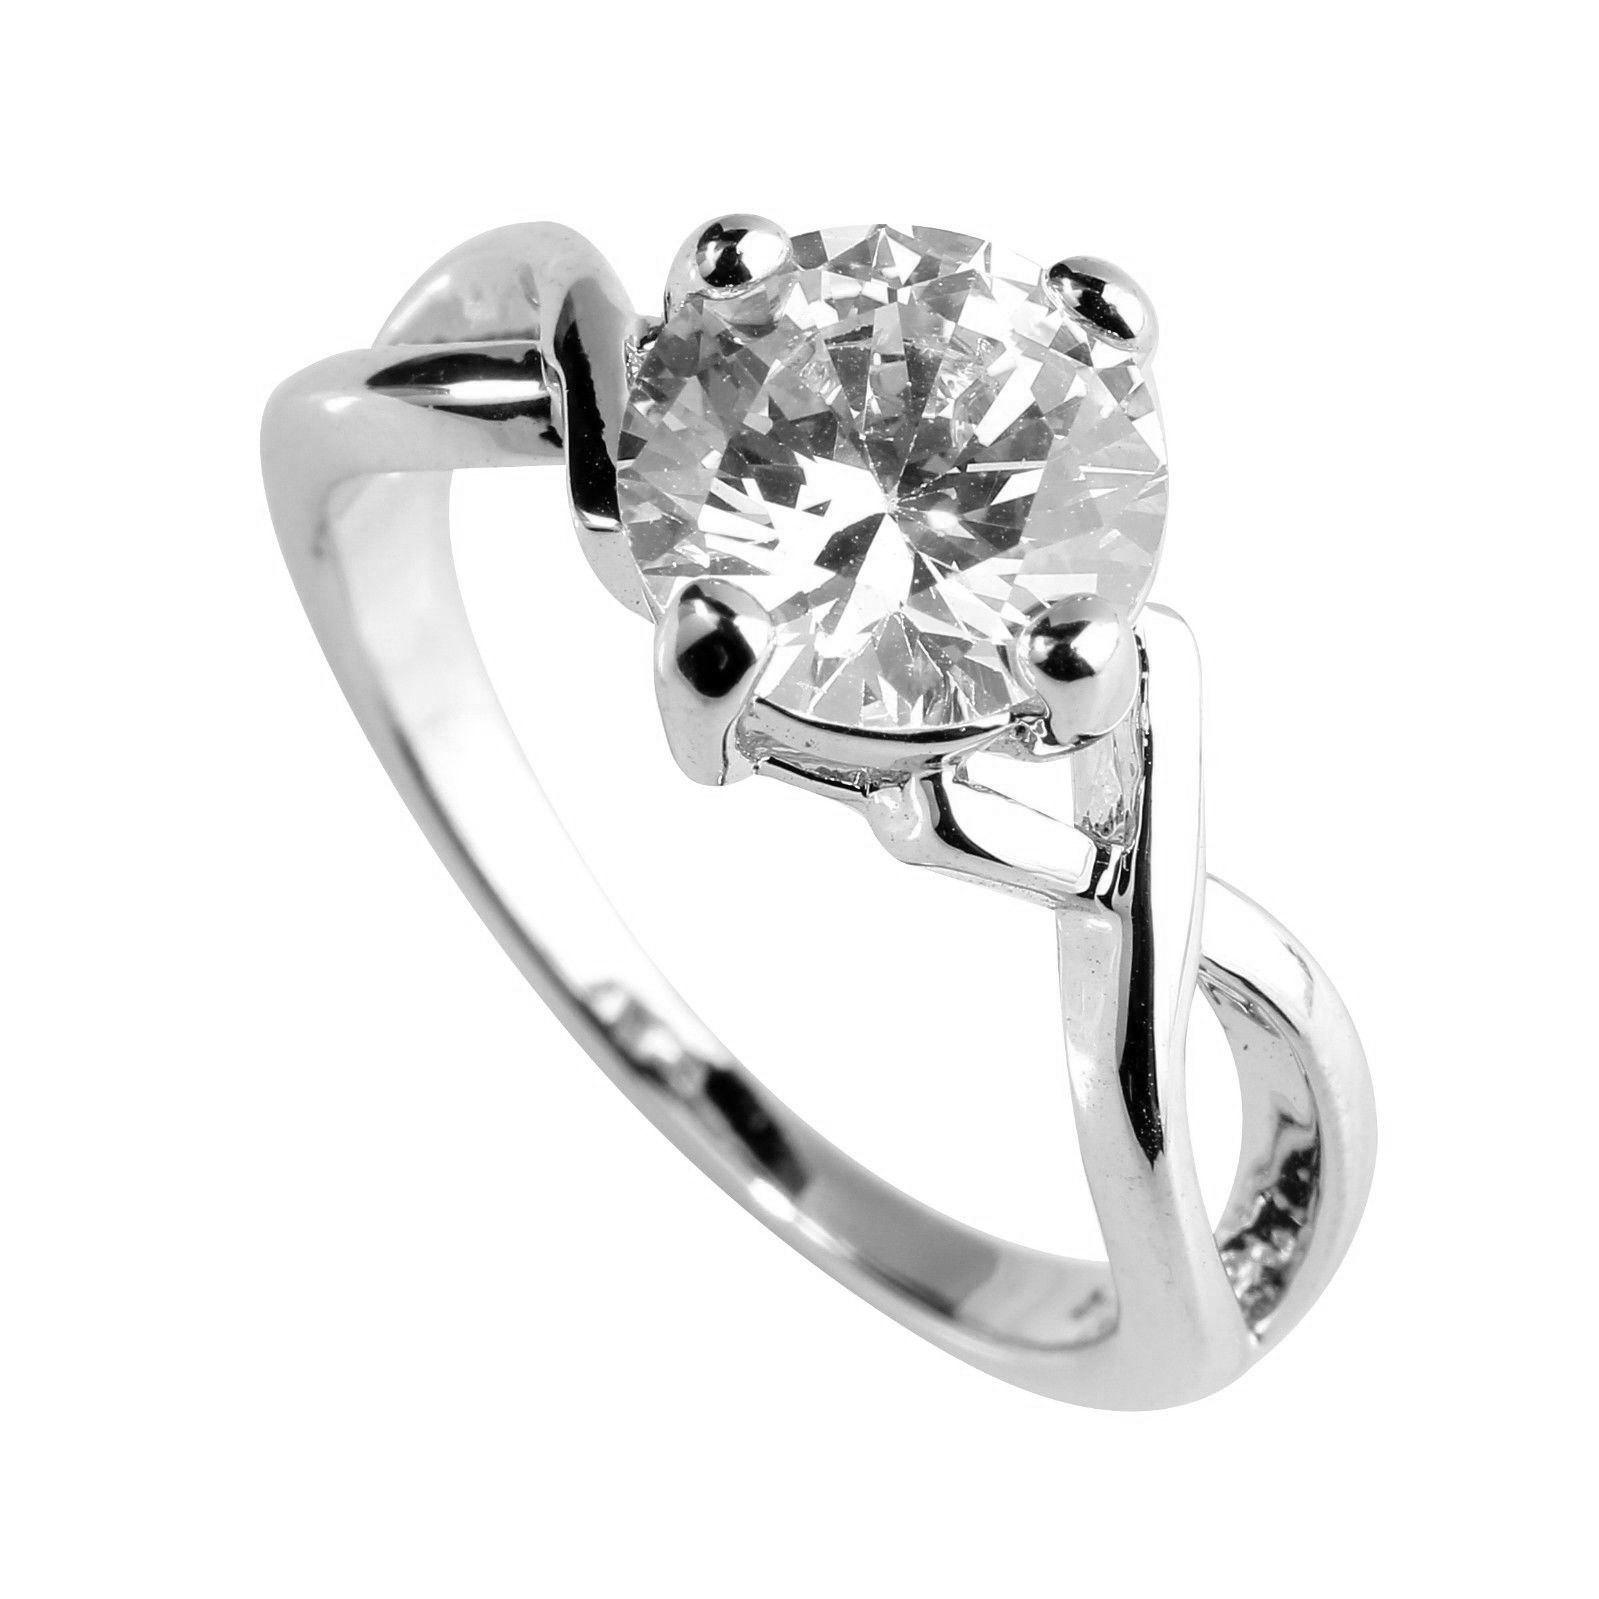 Cubic Zirconia 4 Claw Ring Silver Size 10